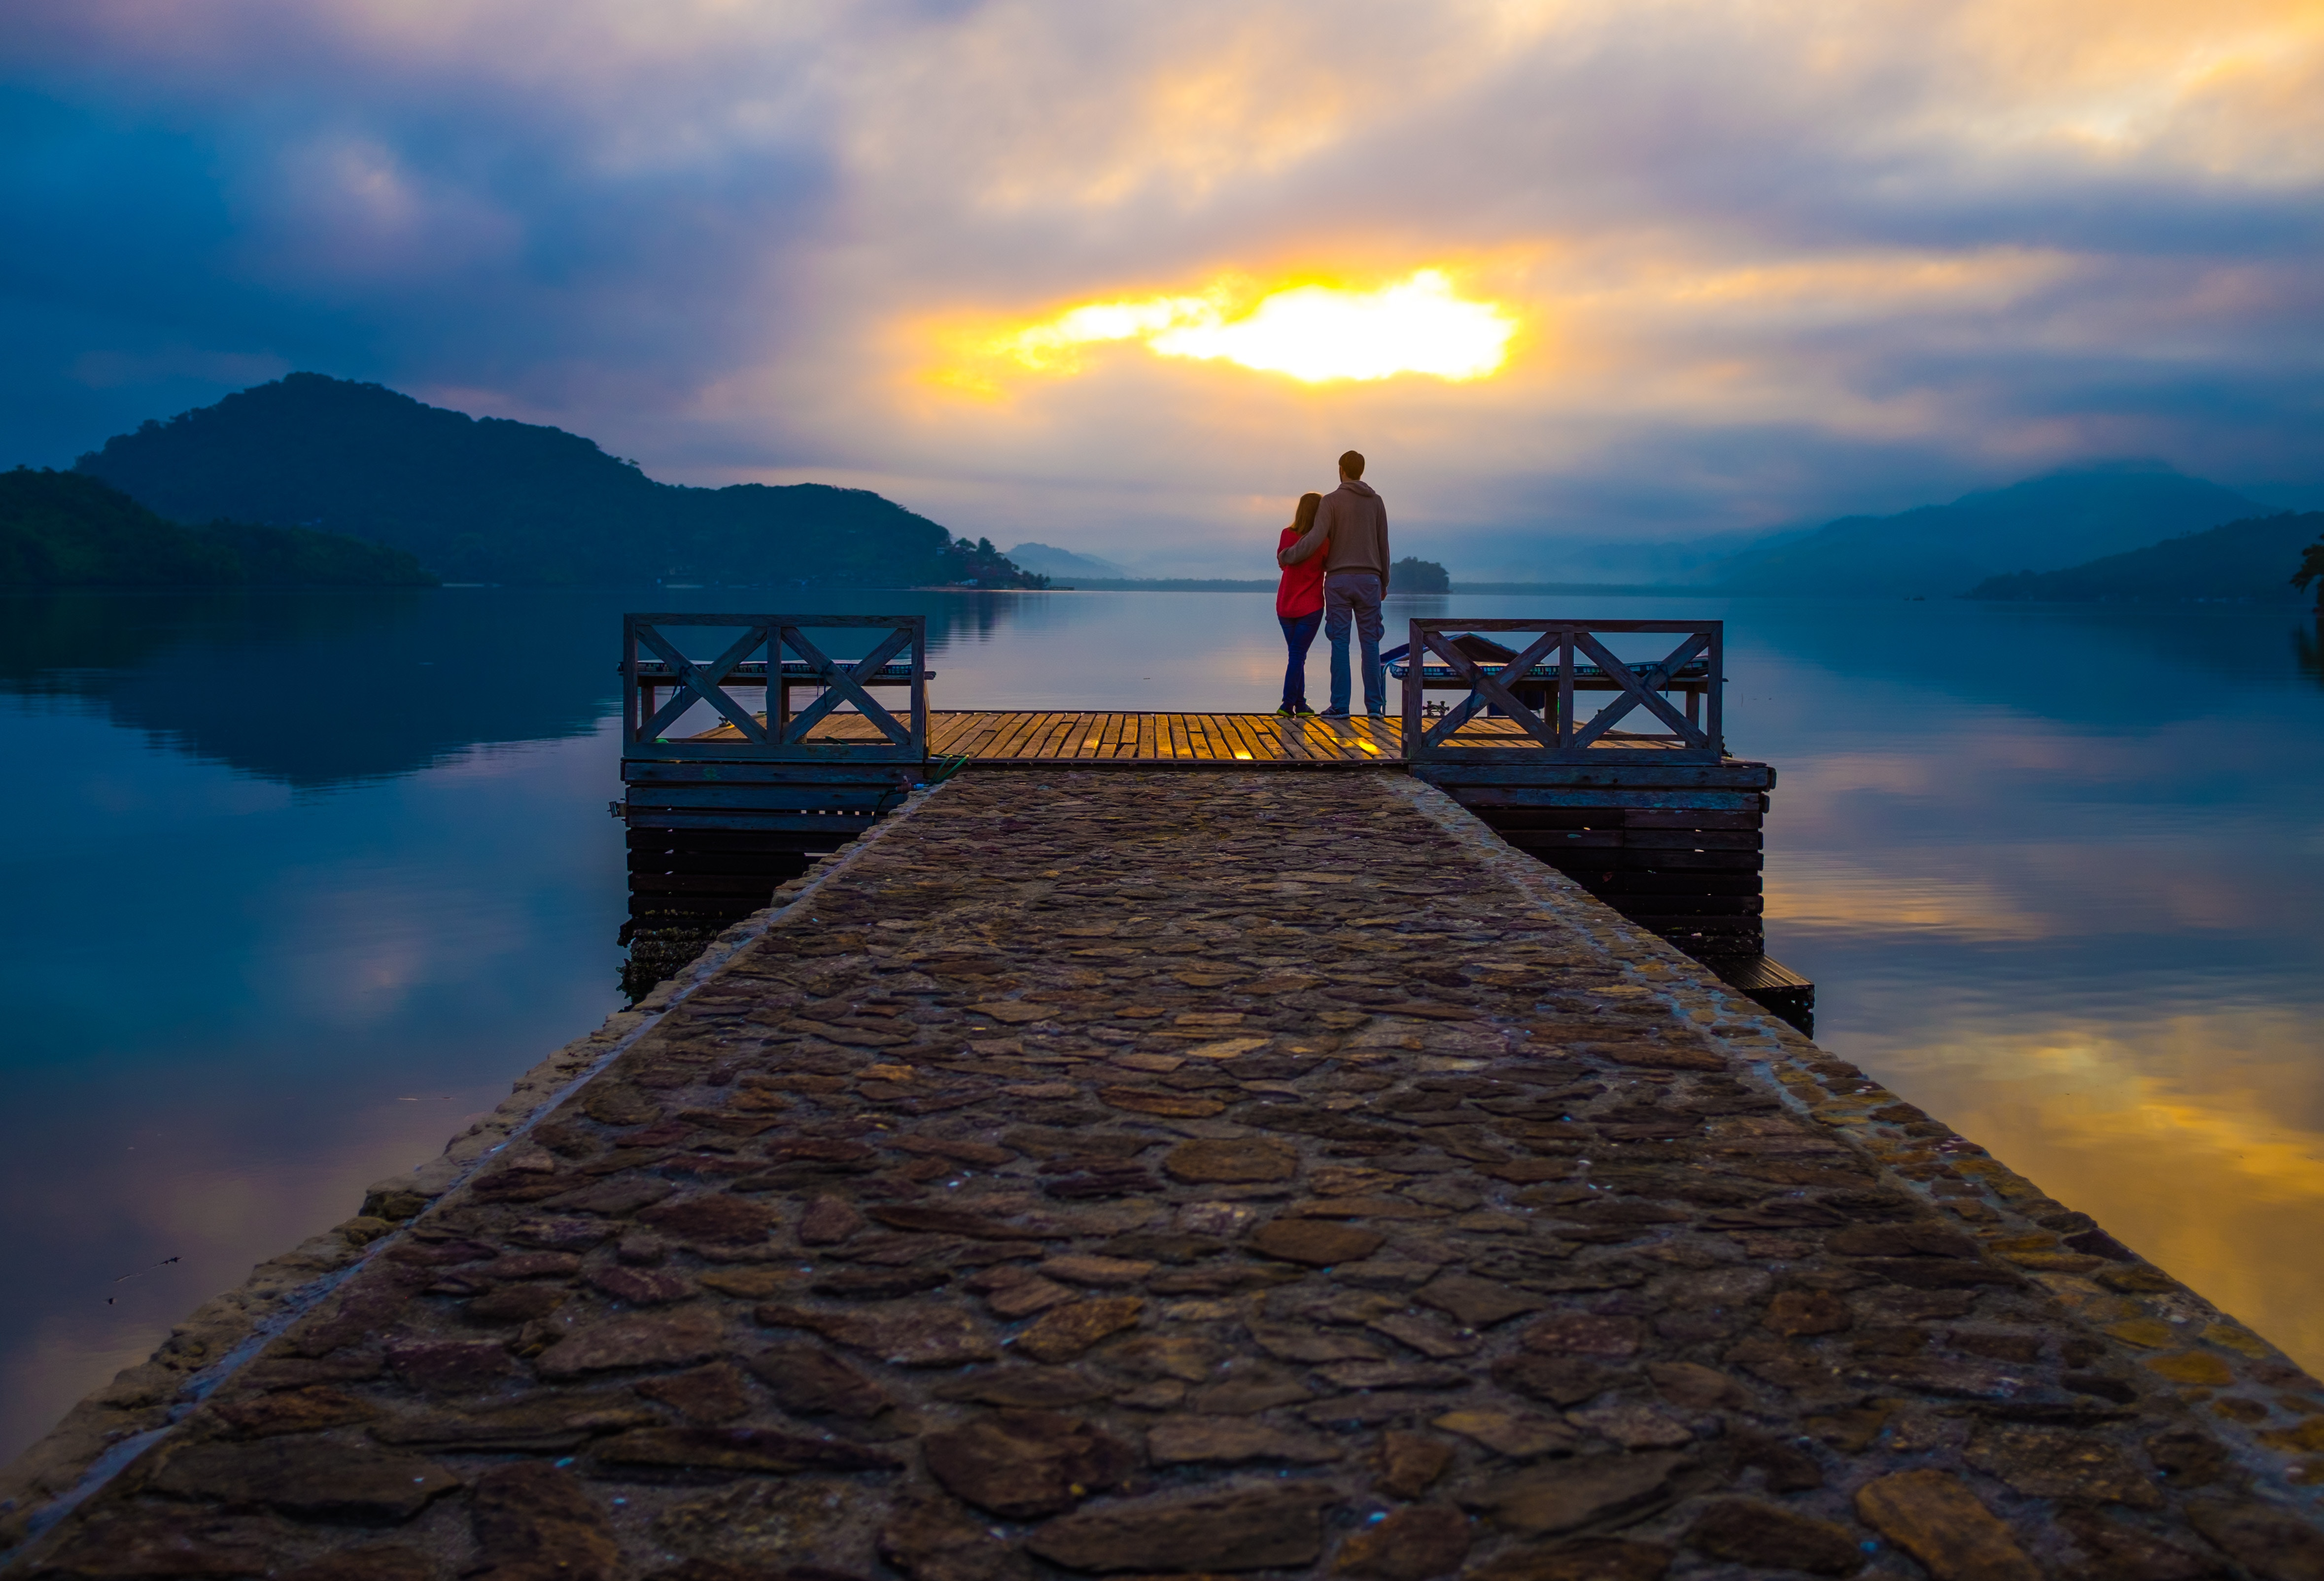 a couple standing on the edge of a platform in the water, watching a sunset